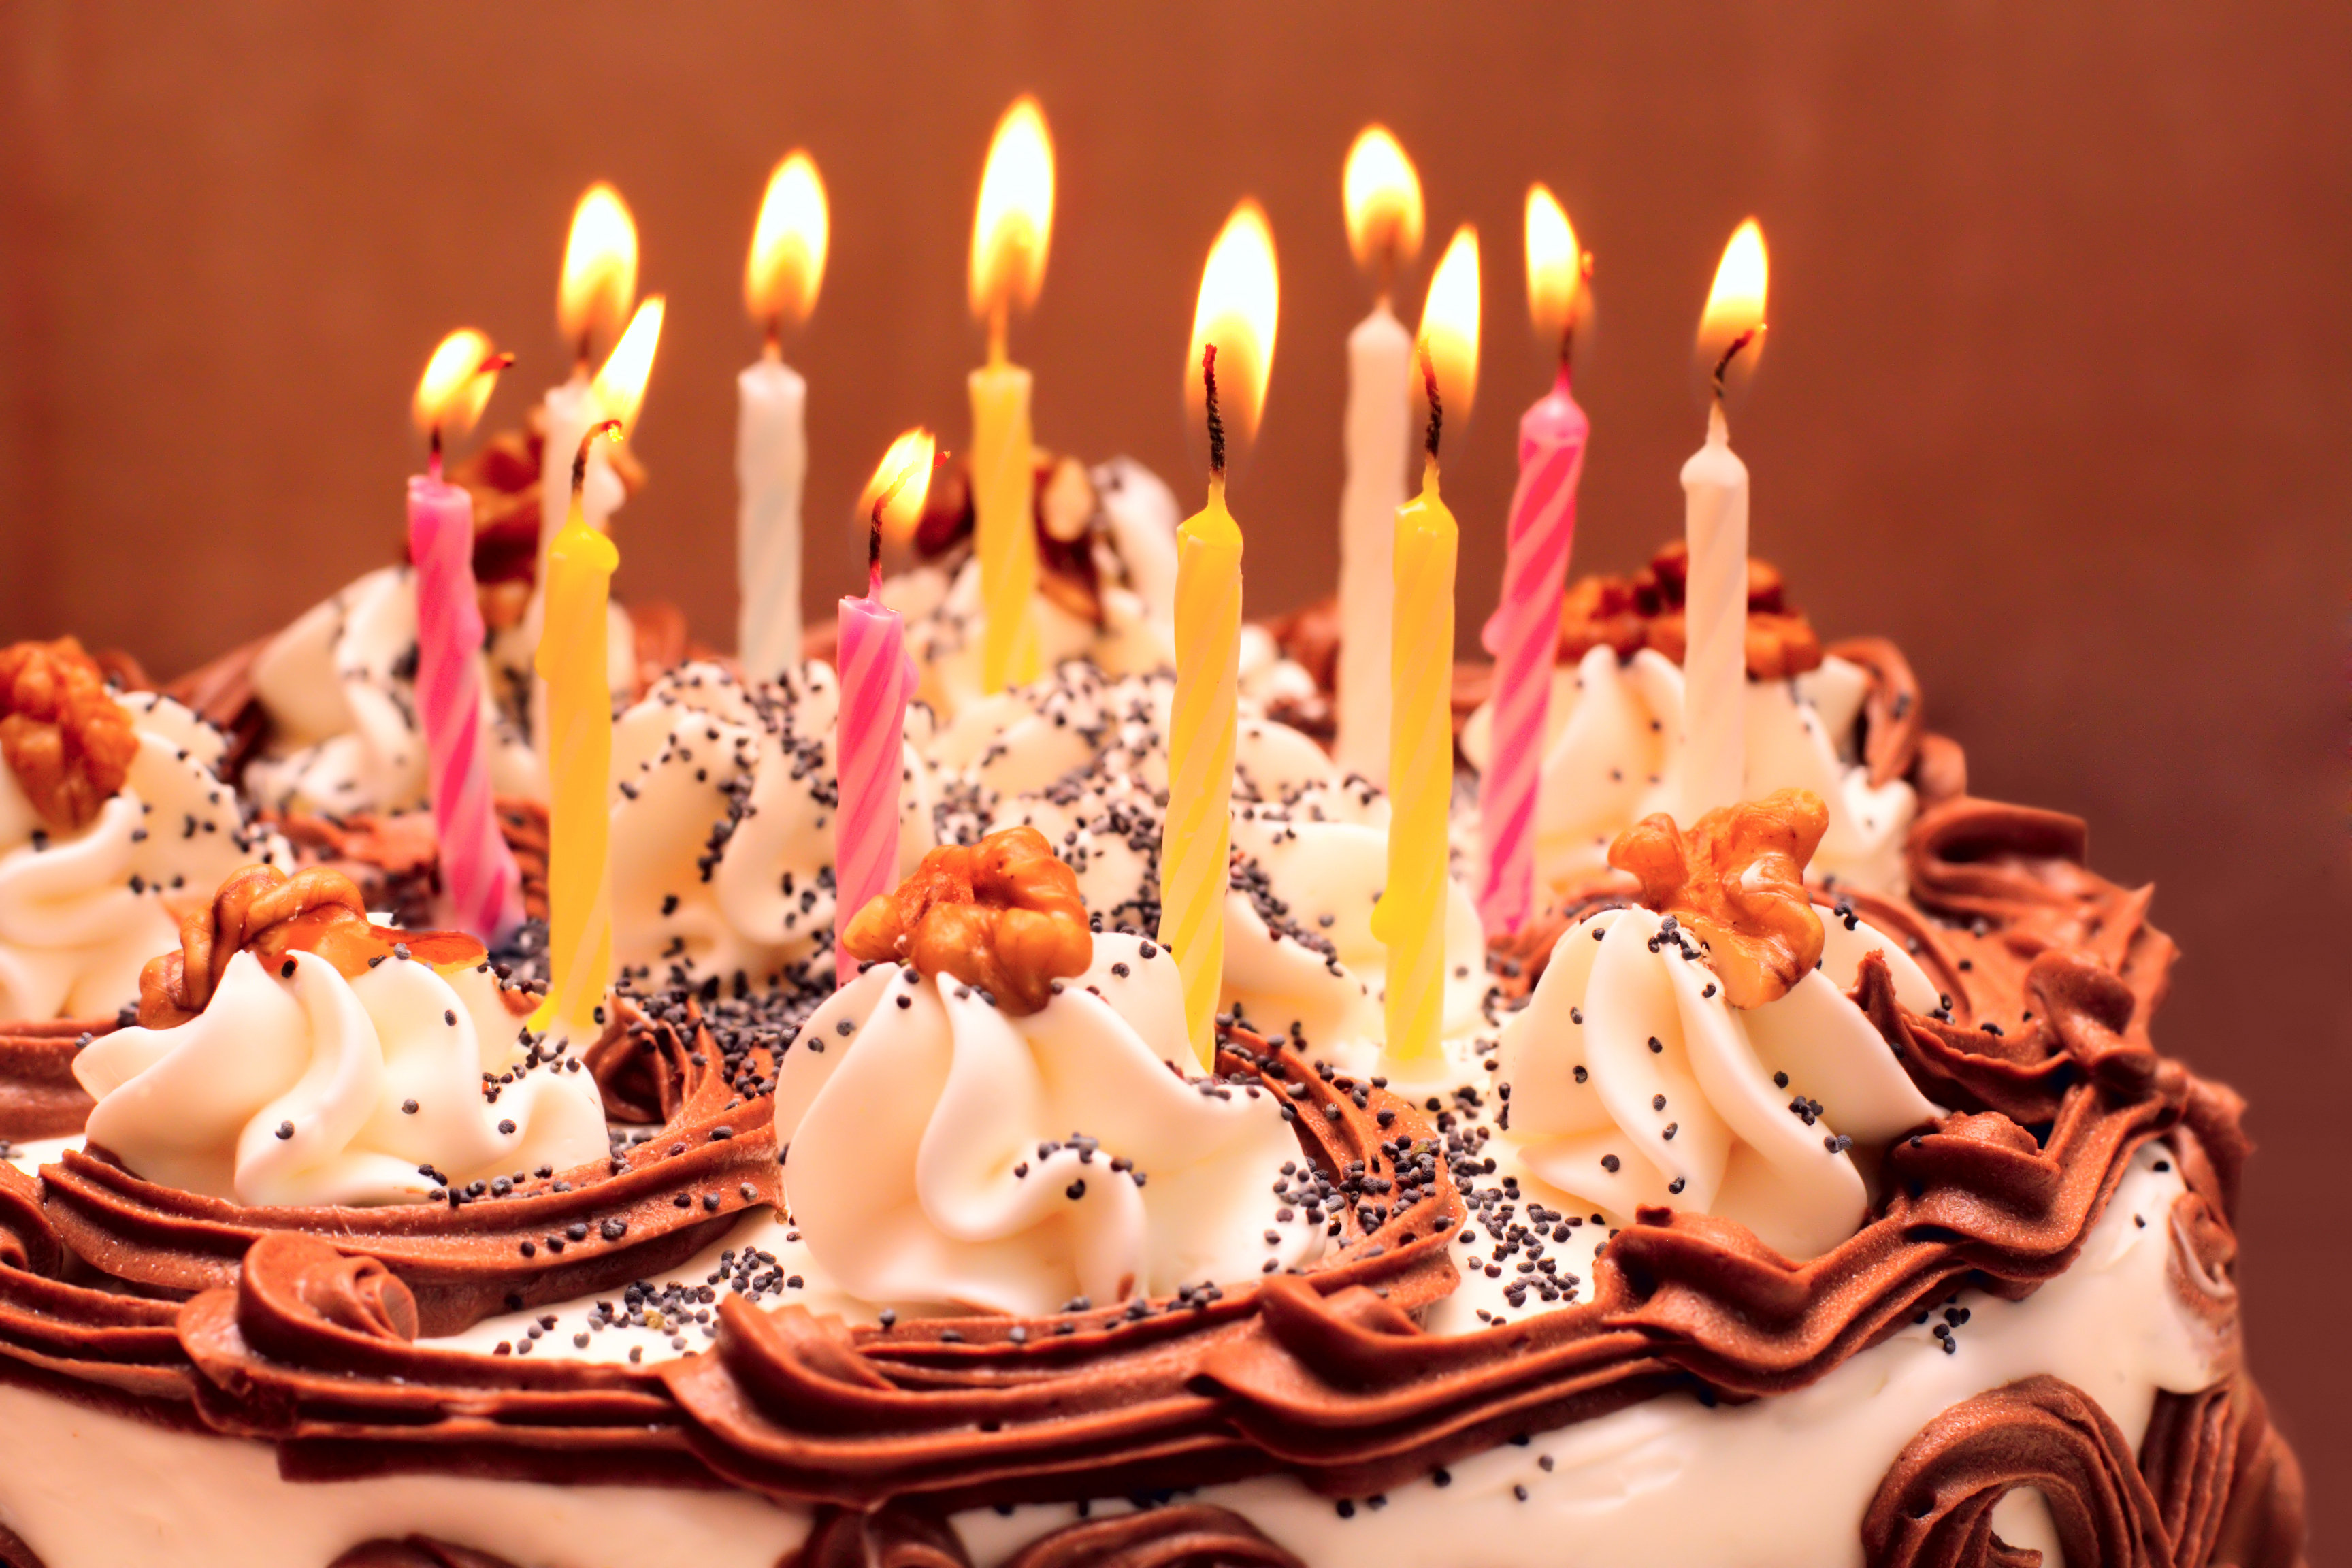 how the practice of putting candles on cakes for birthdays started